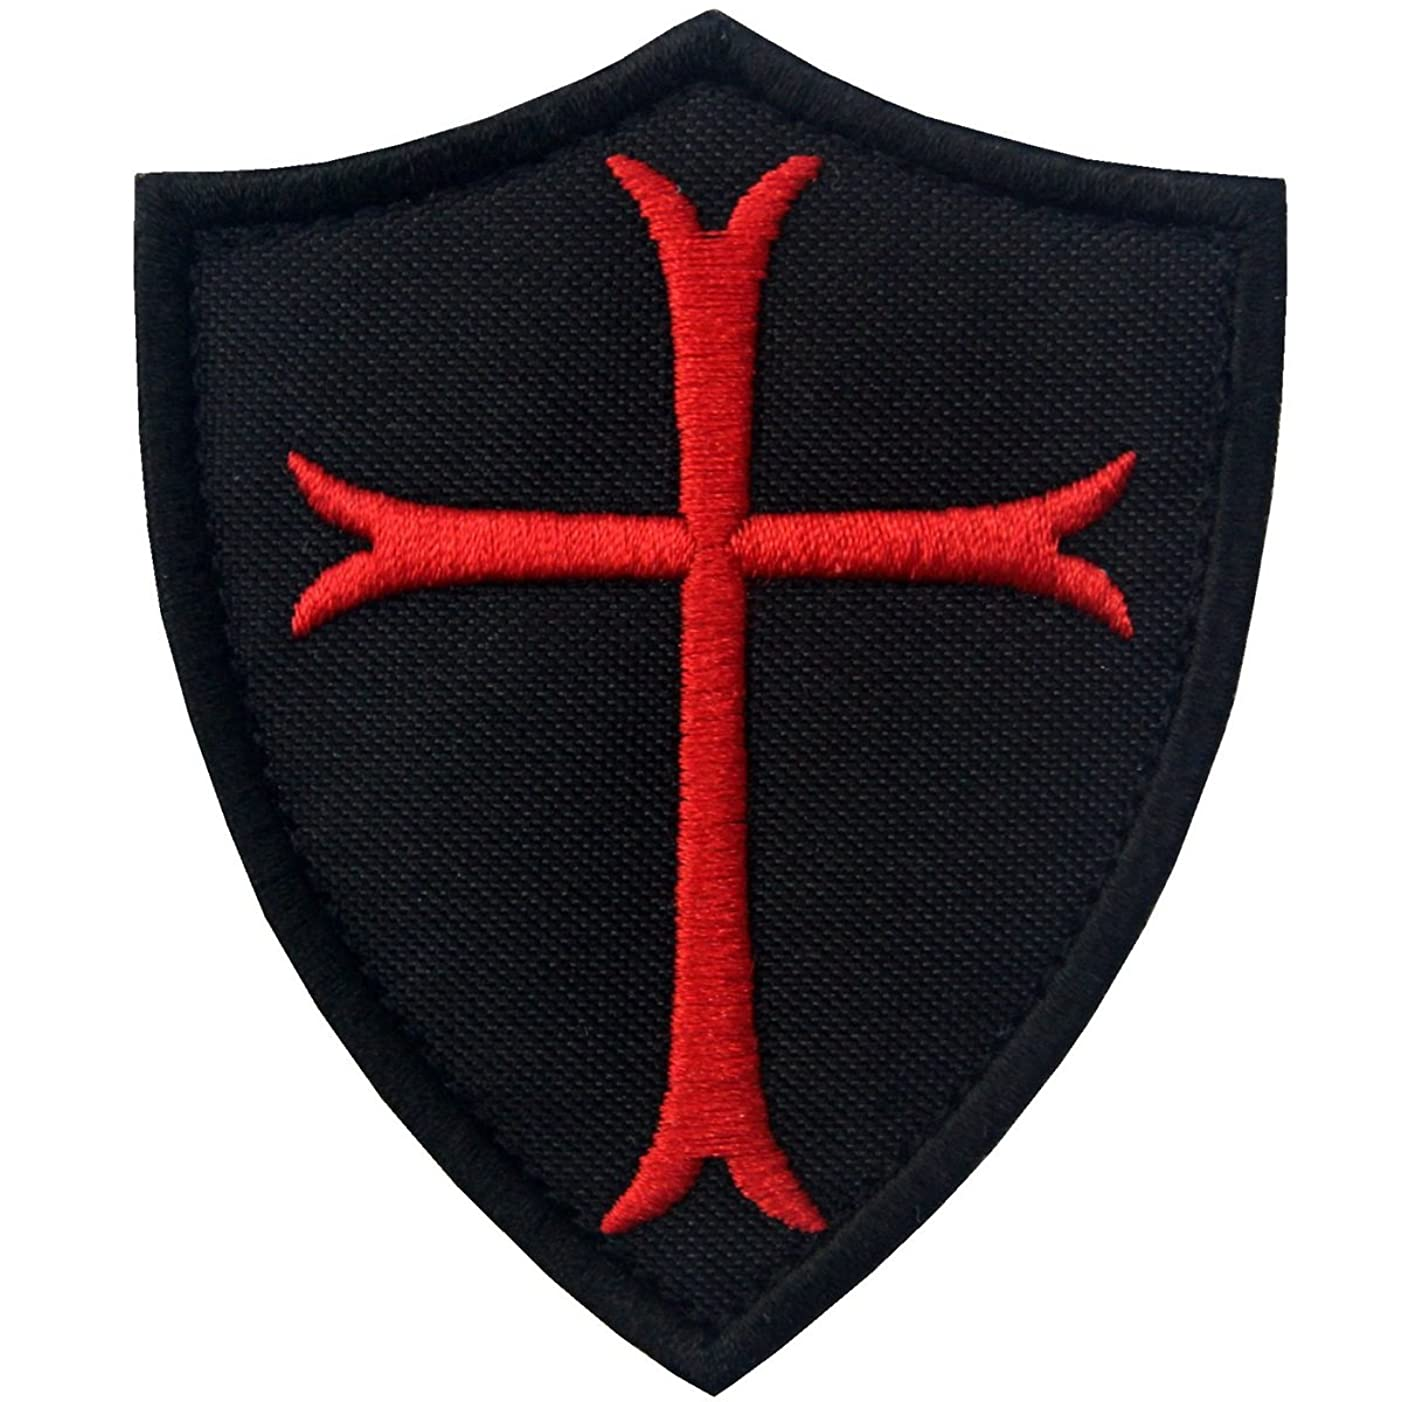 Knights Templar Cross Shield Military Morale Embroidered Fastener Hook & Loop Patch - Black & Red